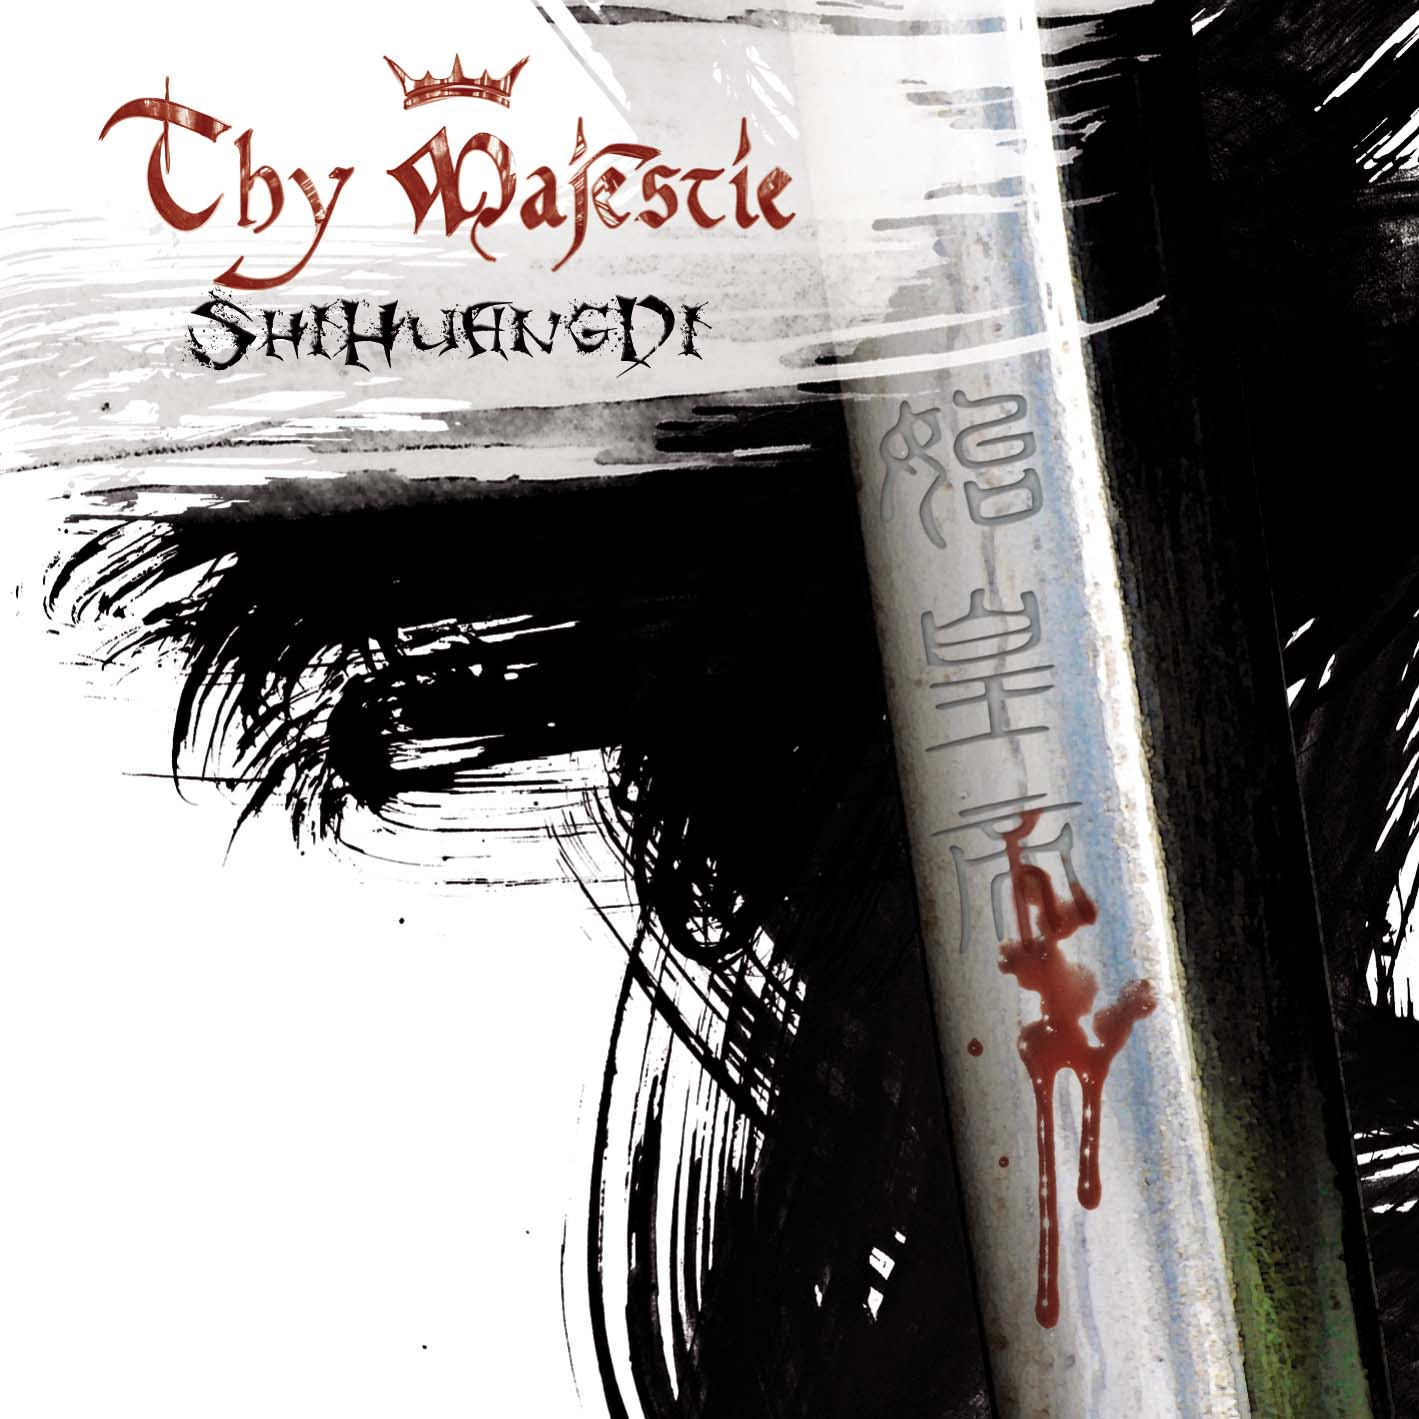 """News Added Sep 02, 2012 Italian symphonic power metal act Thy Majestie is streaming the new song """"Harbinger Of A New Dawn"""". You can enjoy it here. The track appears on the band's forthcoming album ShiHuangDi, which is scheduled for release on September 25th, 2012 through Scarlet Records. Submitted By Nii Track list: Added Sep […]"""